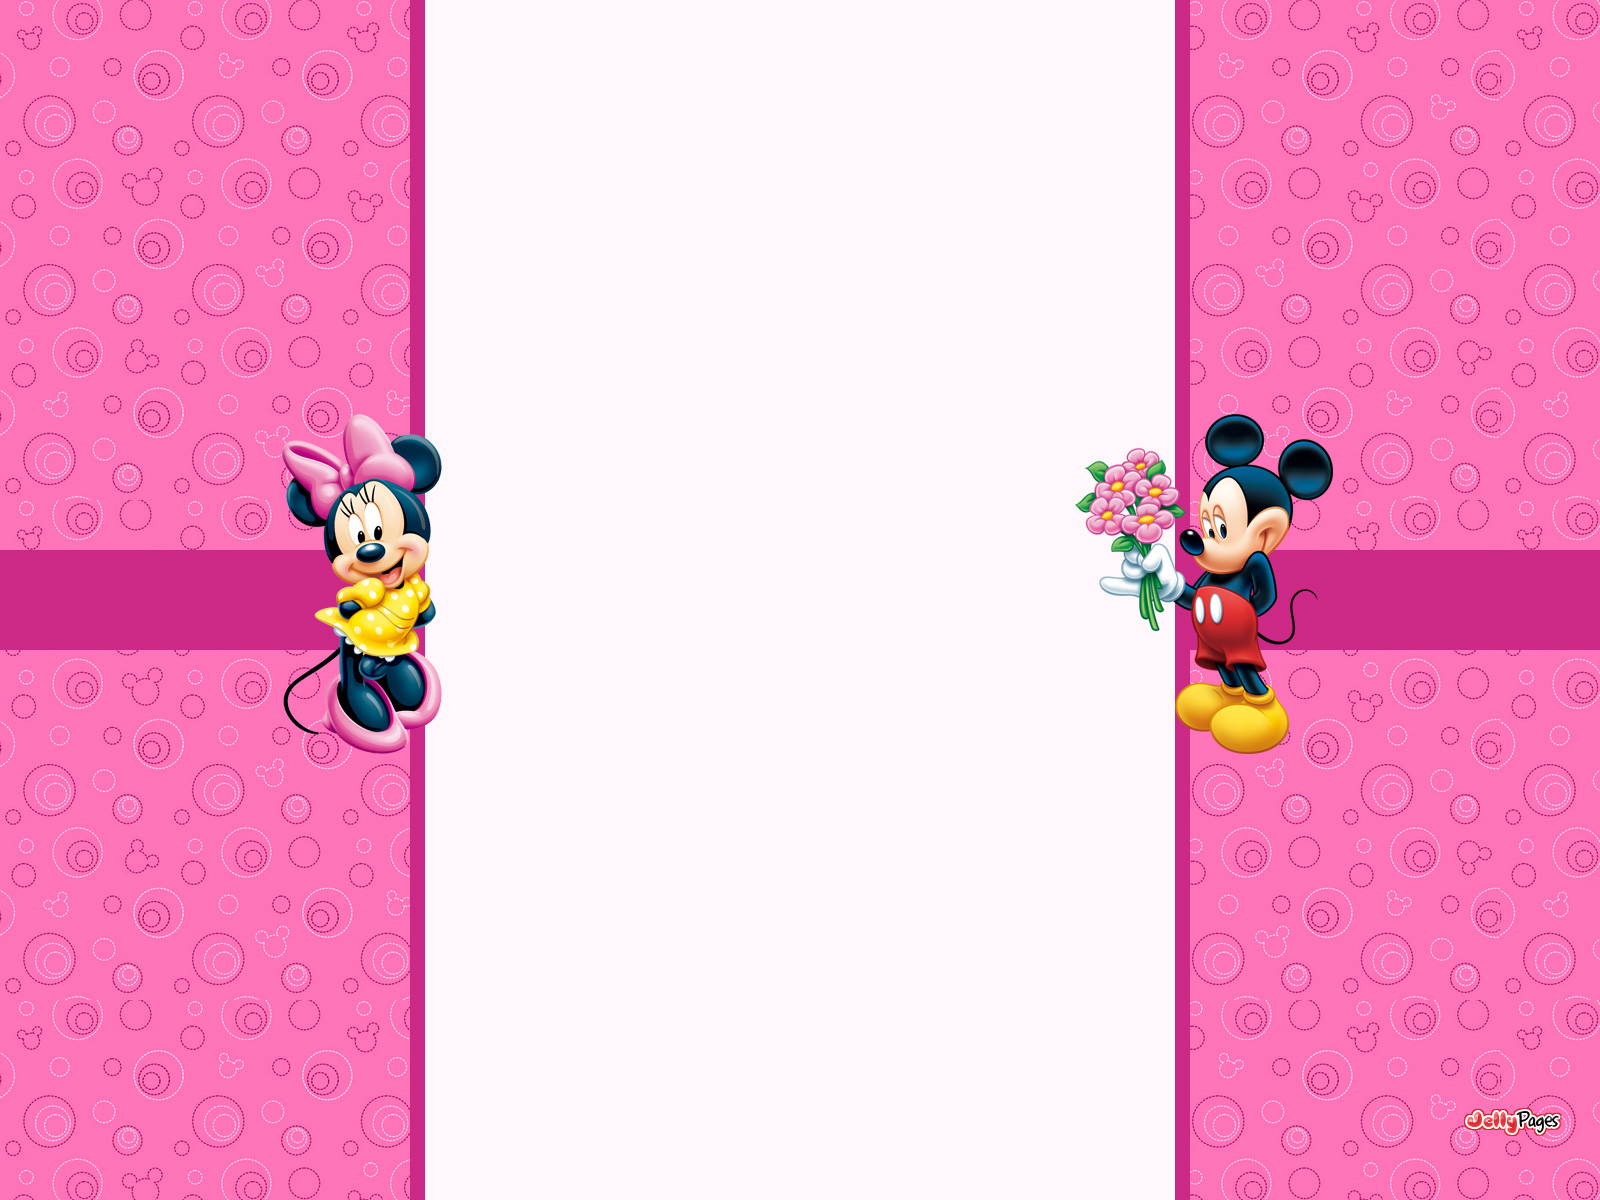 Minnie Mouse Wall Decor Mickey Decals Amazing Wallpaper Border